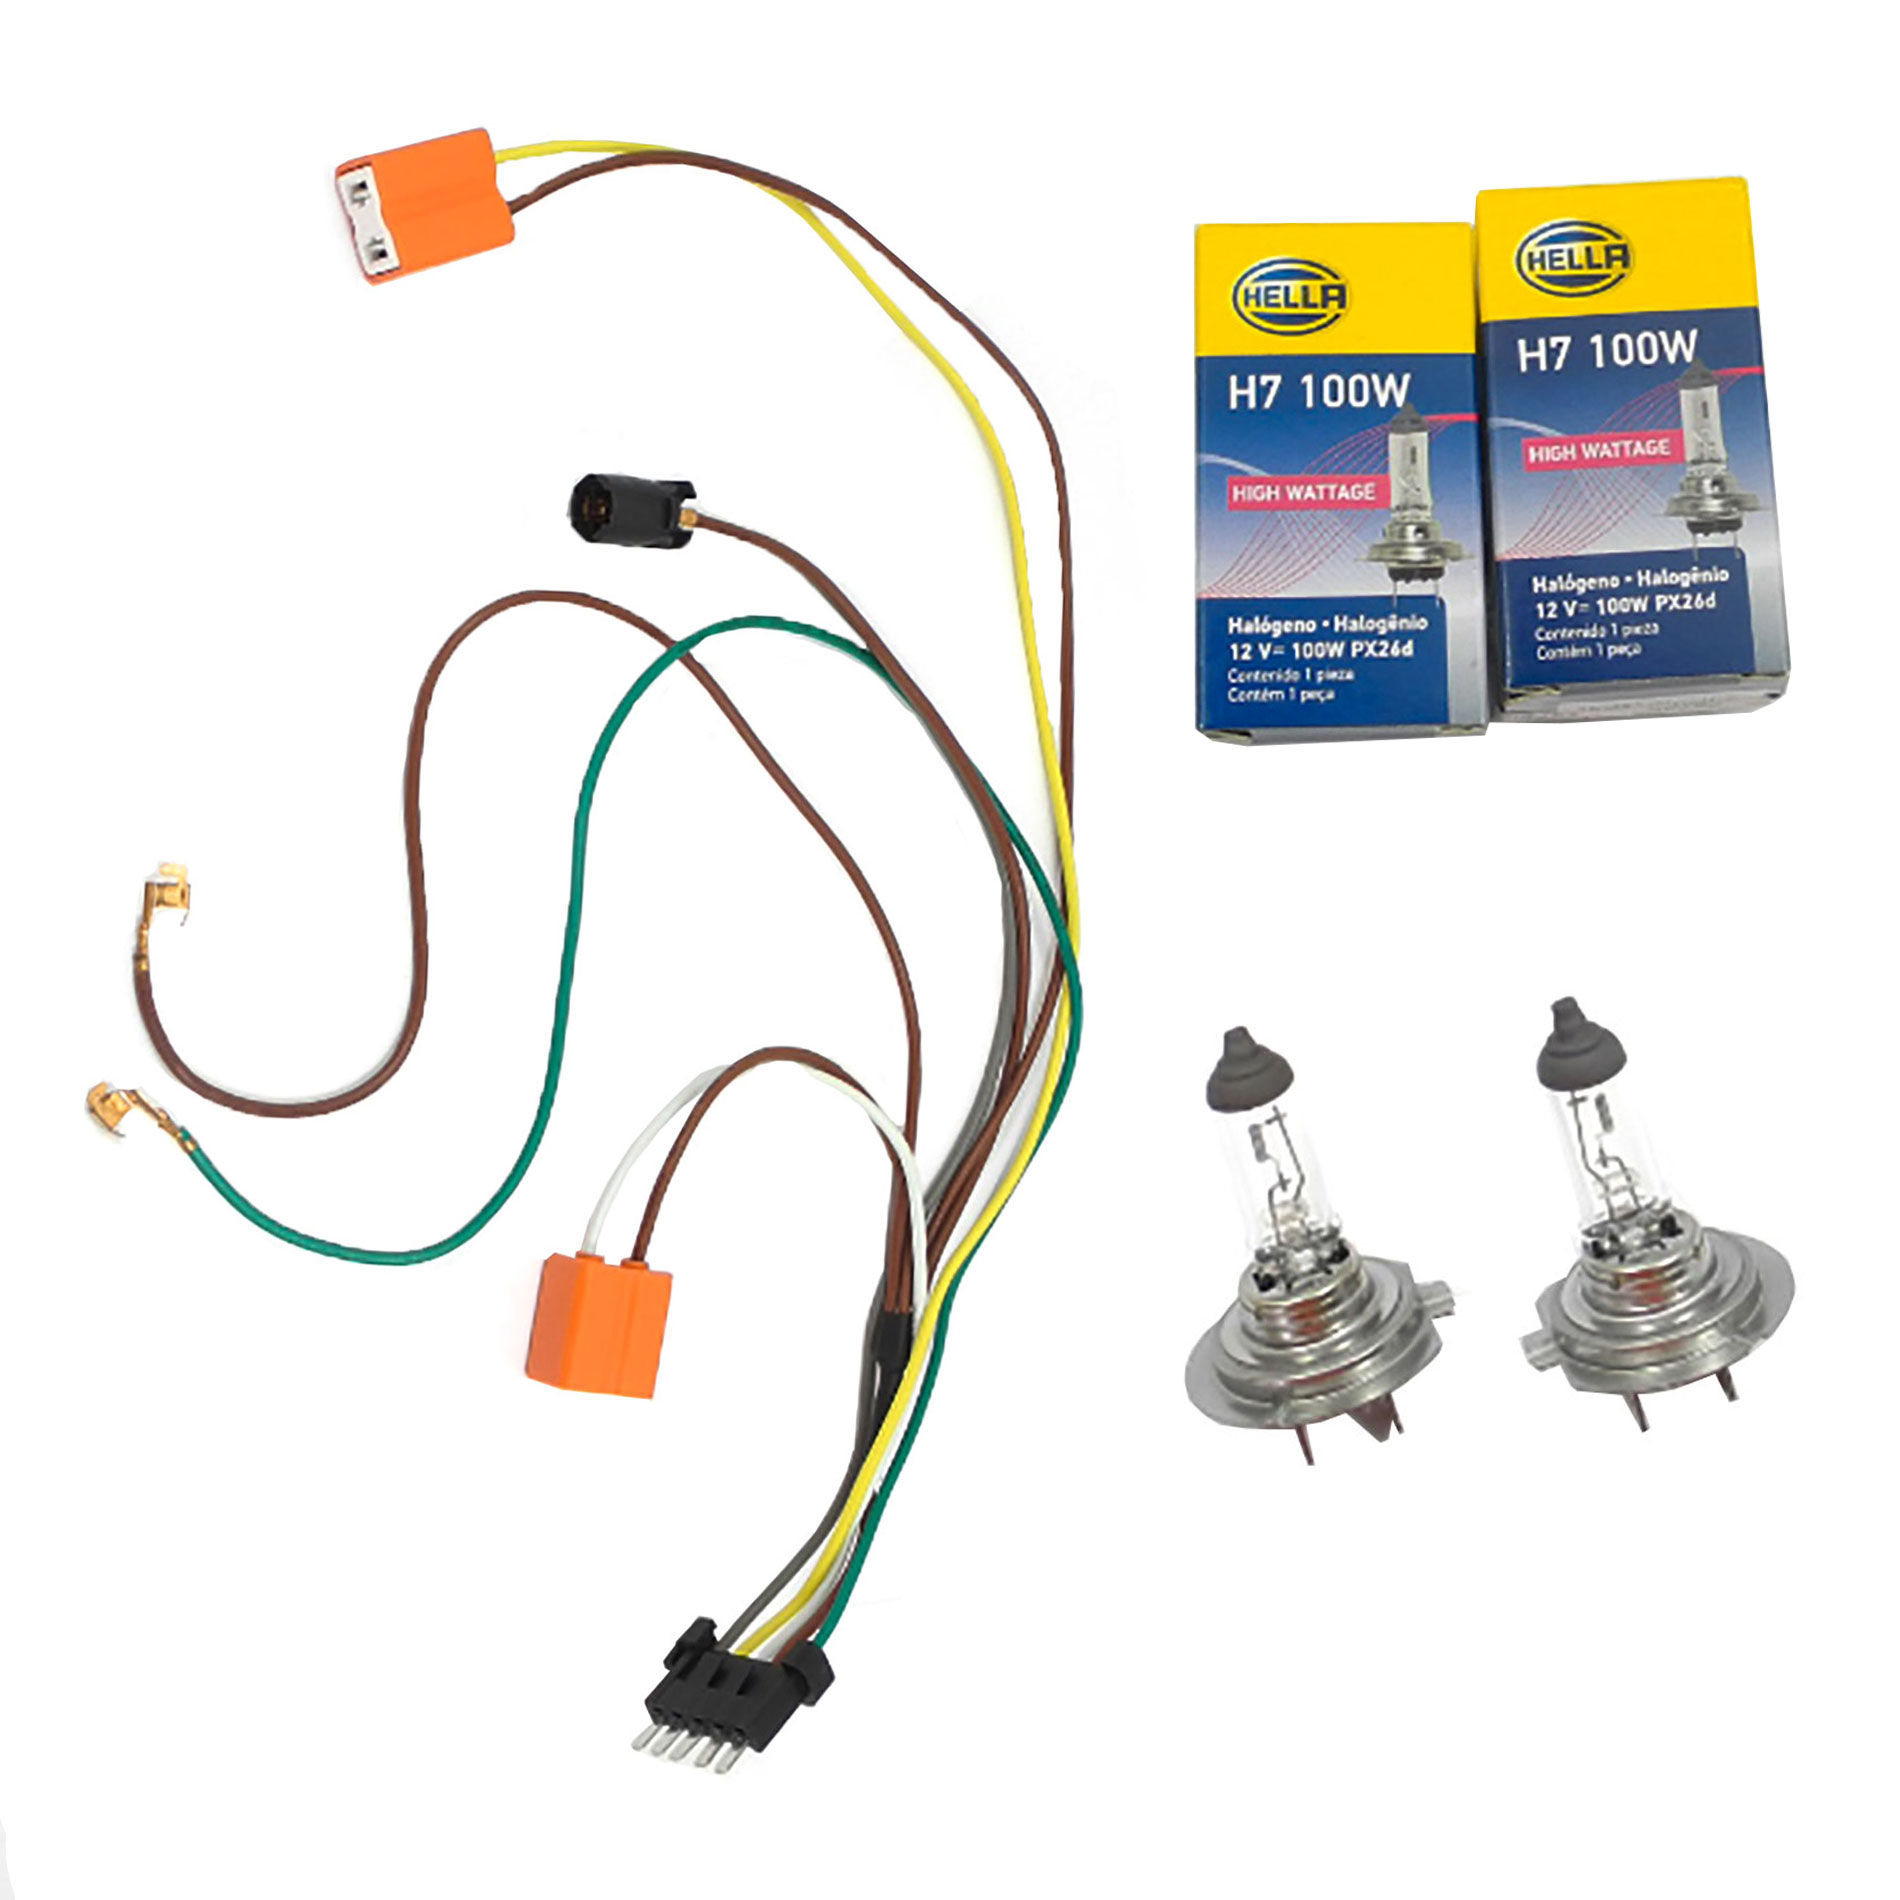 details about benz c32 c240 c230 for l r headlight wiring harness \u0026 headlight bulb h7 100w Benz C32 Engine Wiring Harness